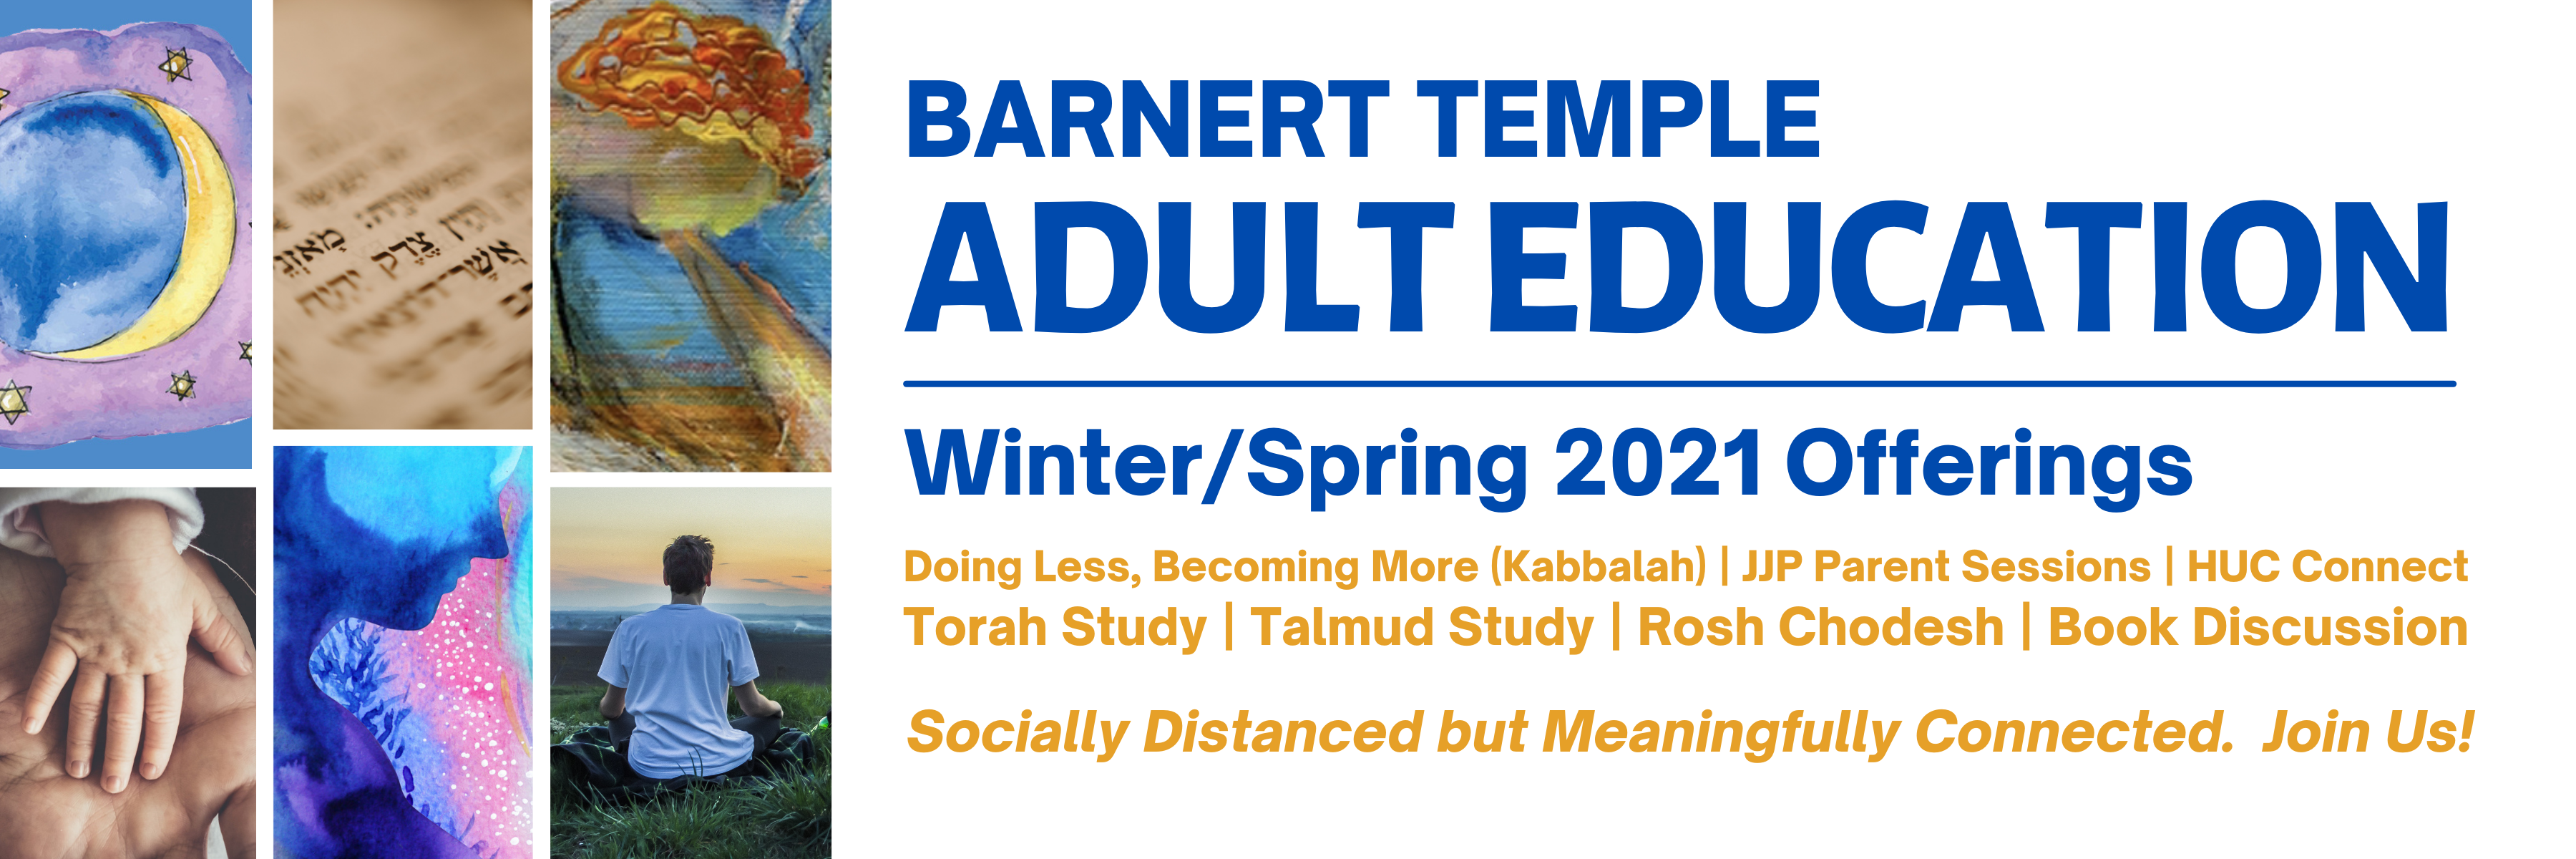 "<a href=""https://www.barnerttemple.org/adult-education""